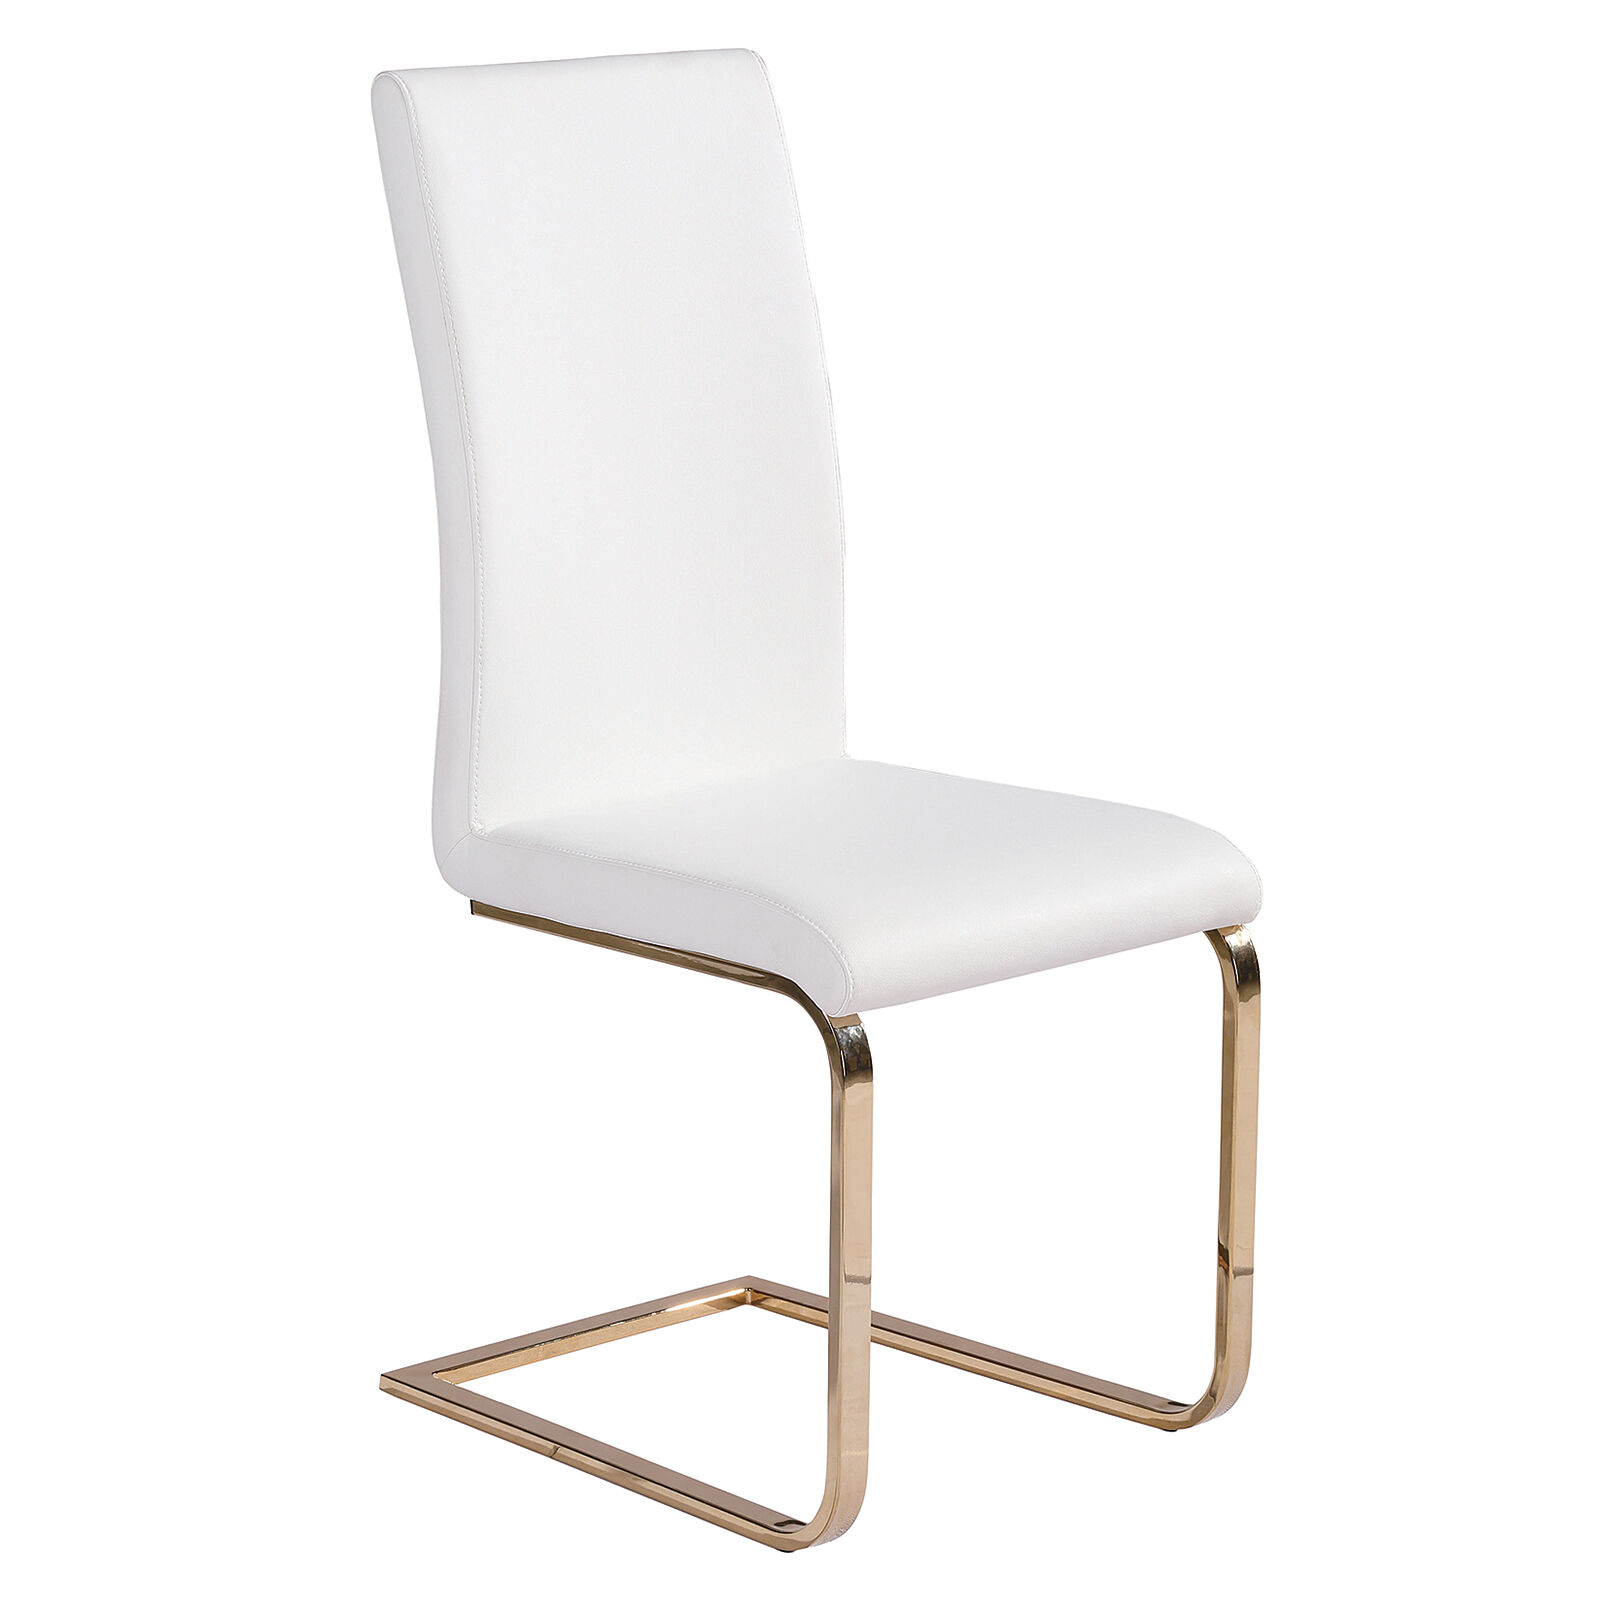 white and gold chair xtender wheelchair circa dining at home zoom